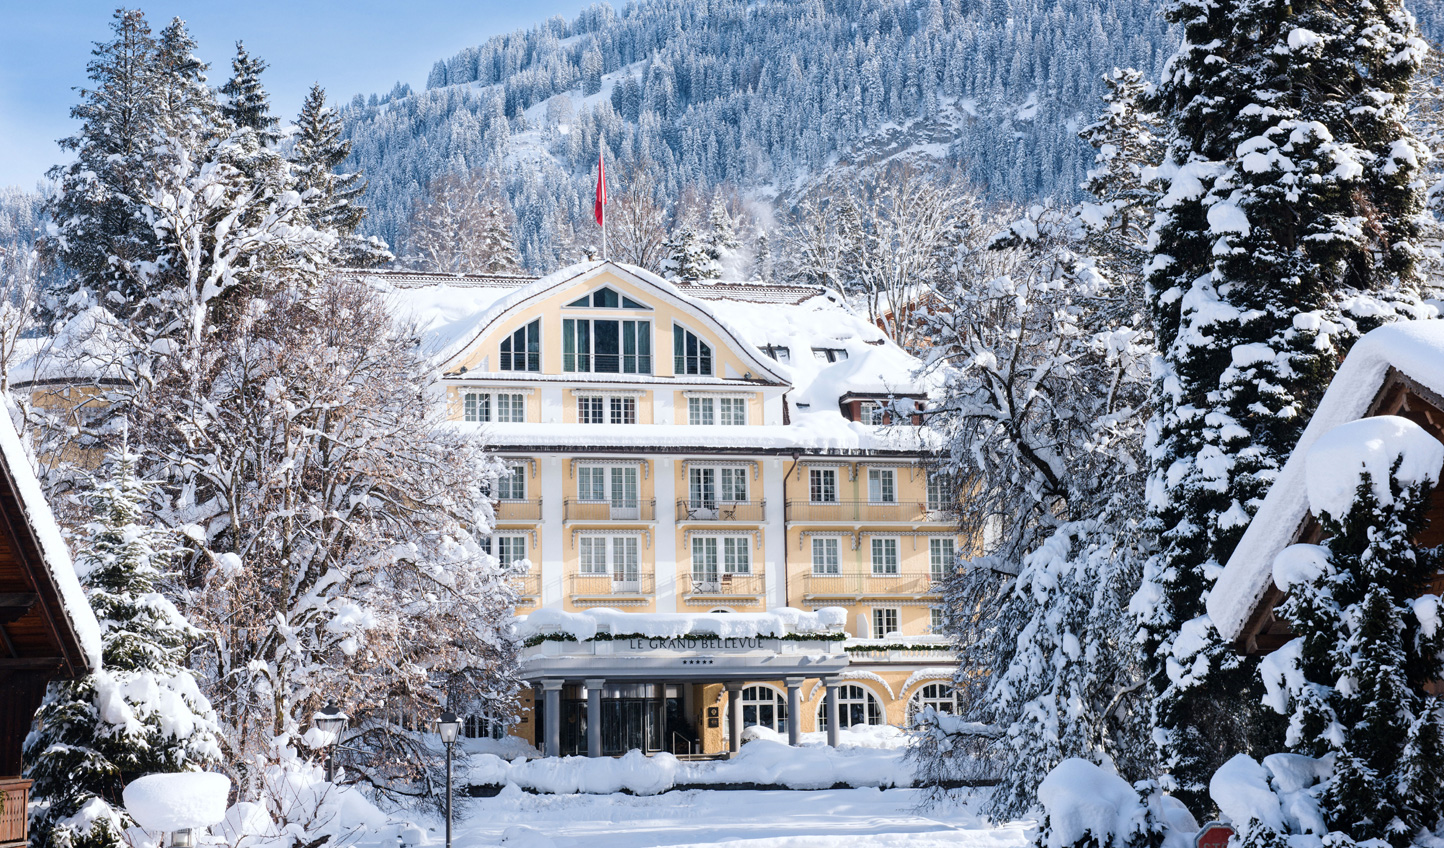 Escape to a winter wonderland amid the Swiss alpine charm of Le Grand Bellevue, Gstaad